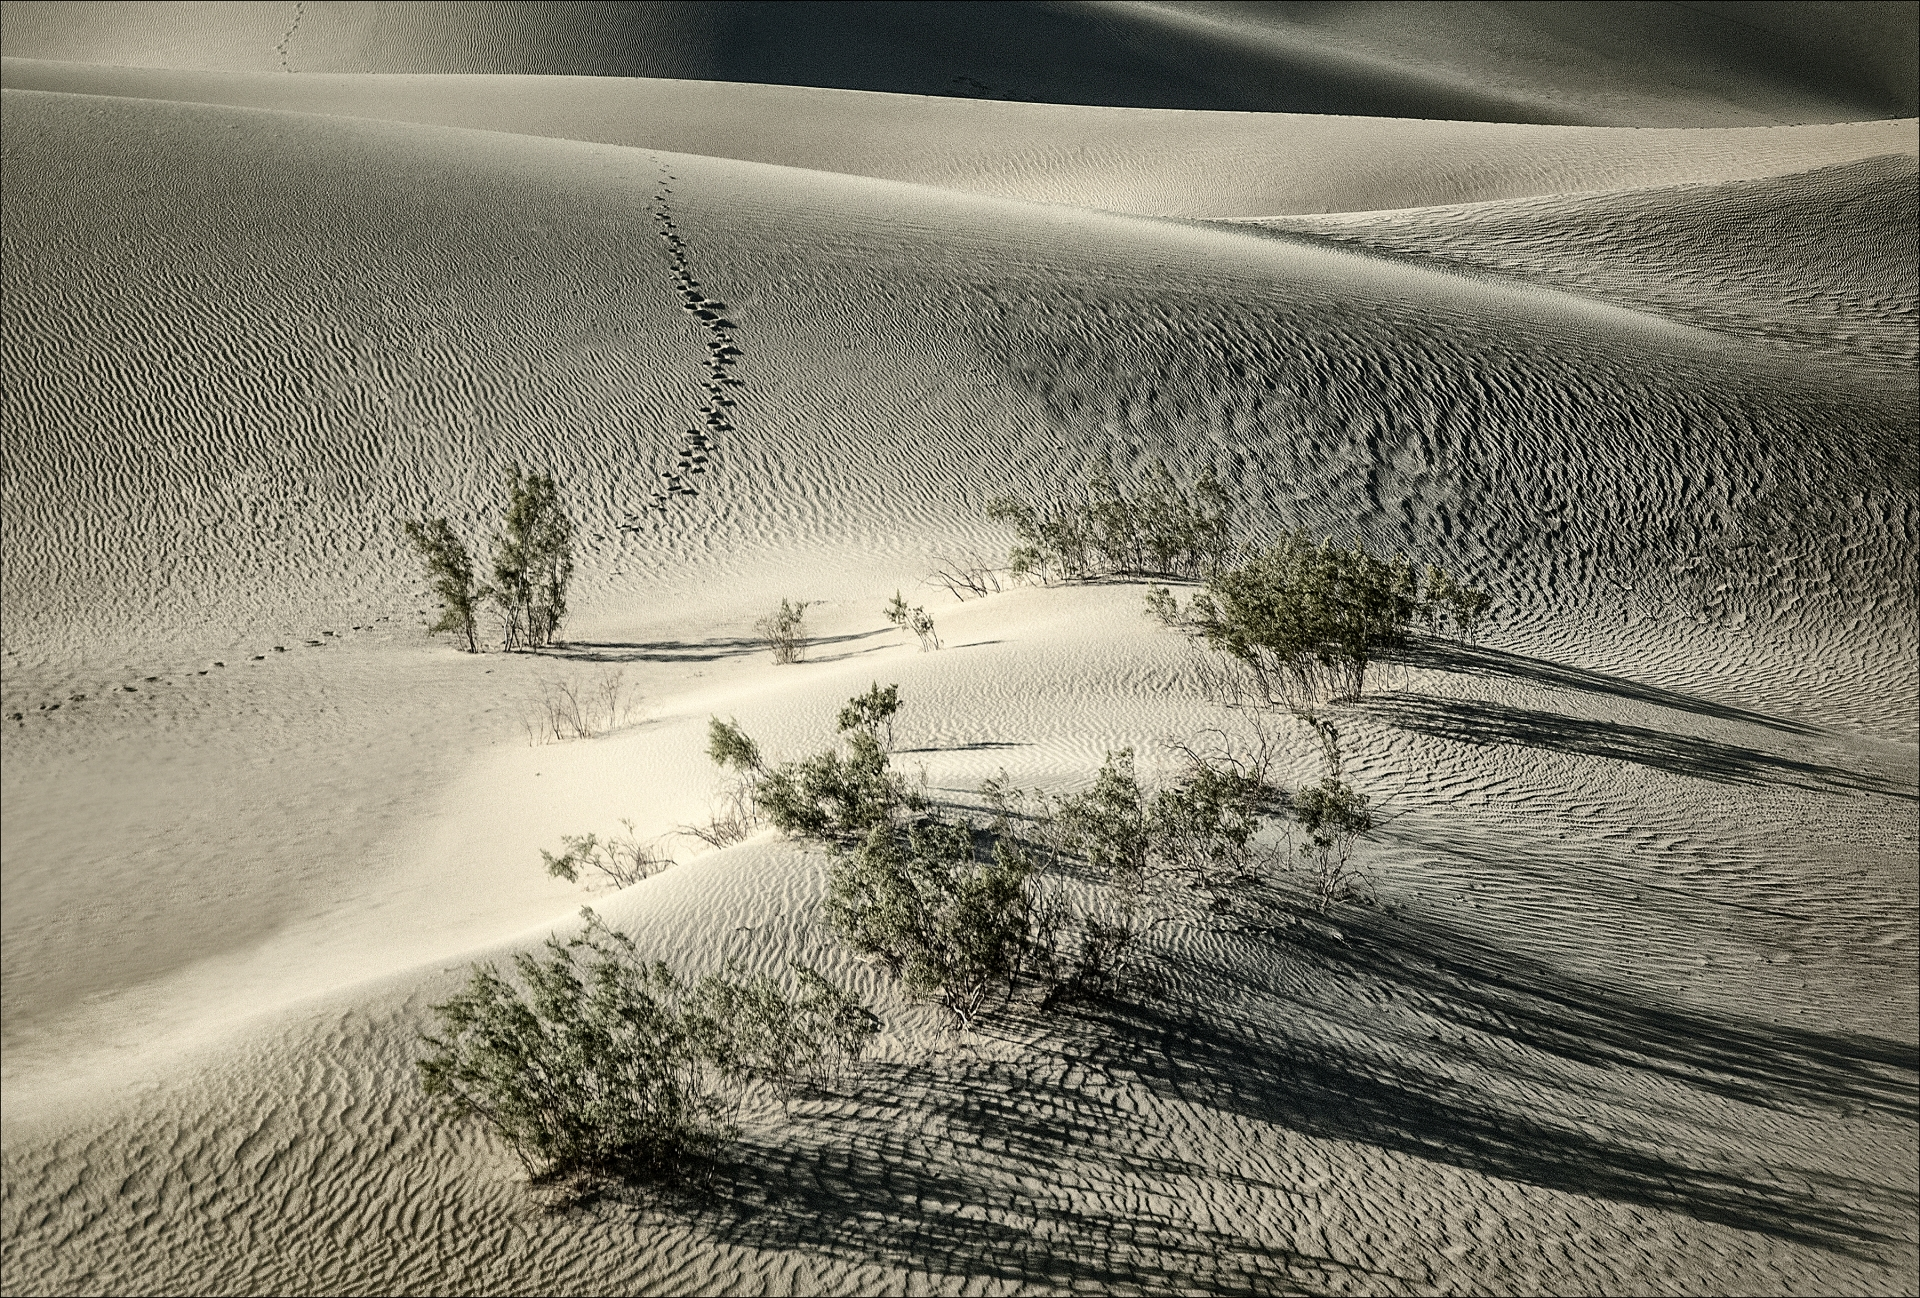 Trees in the Sand Dunes